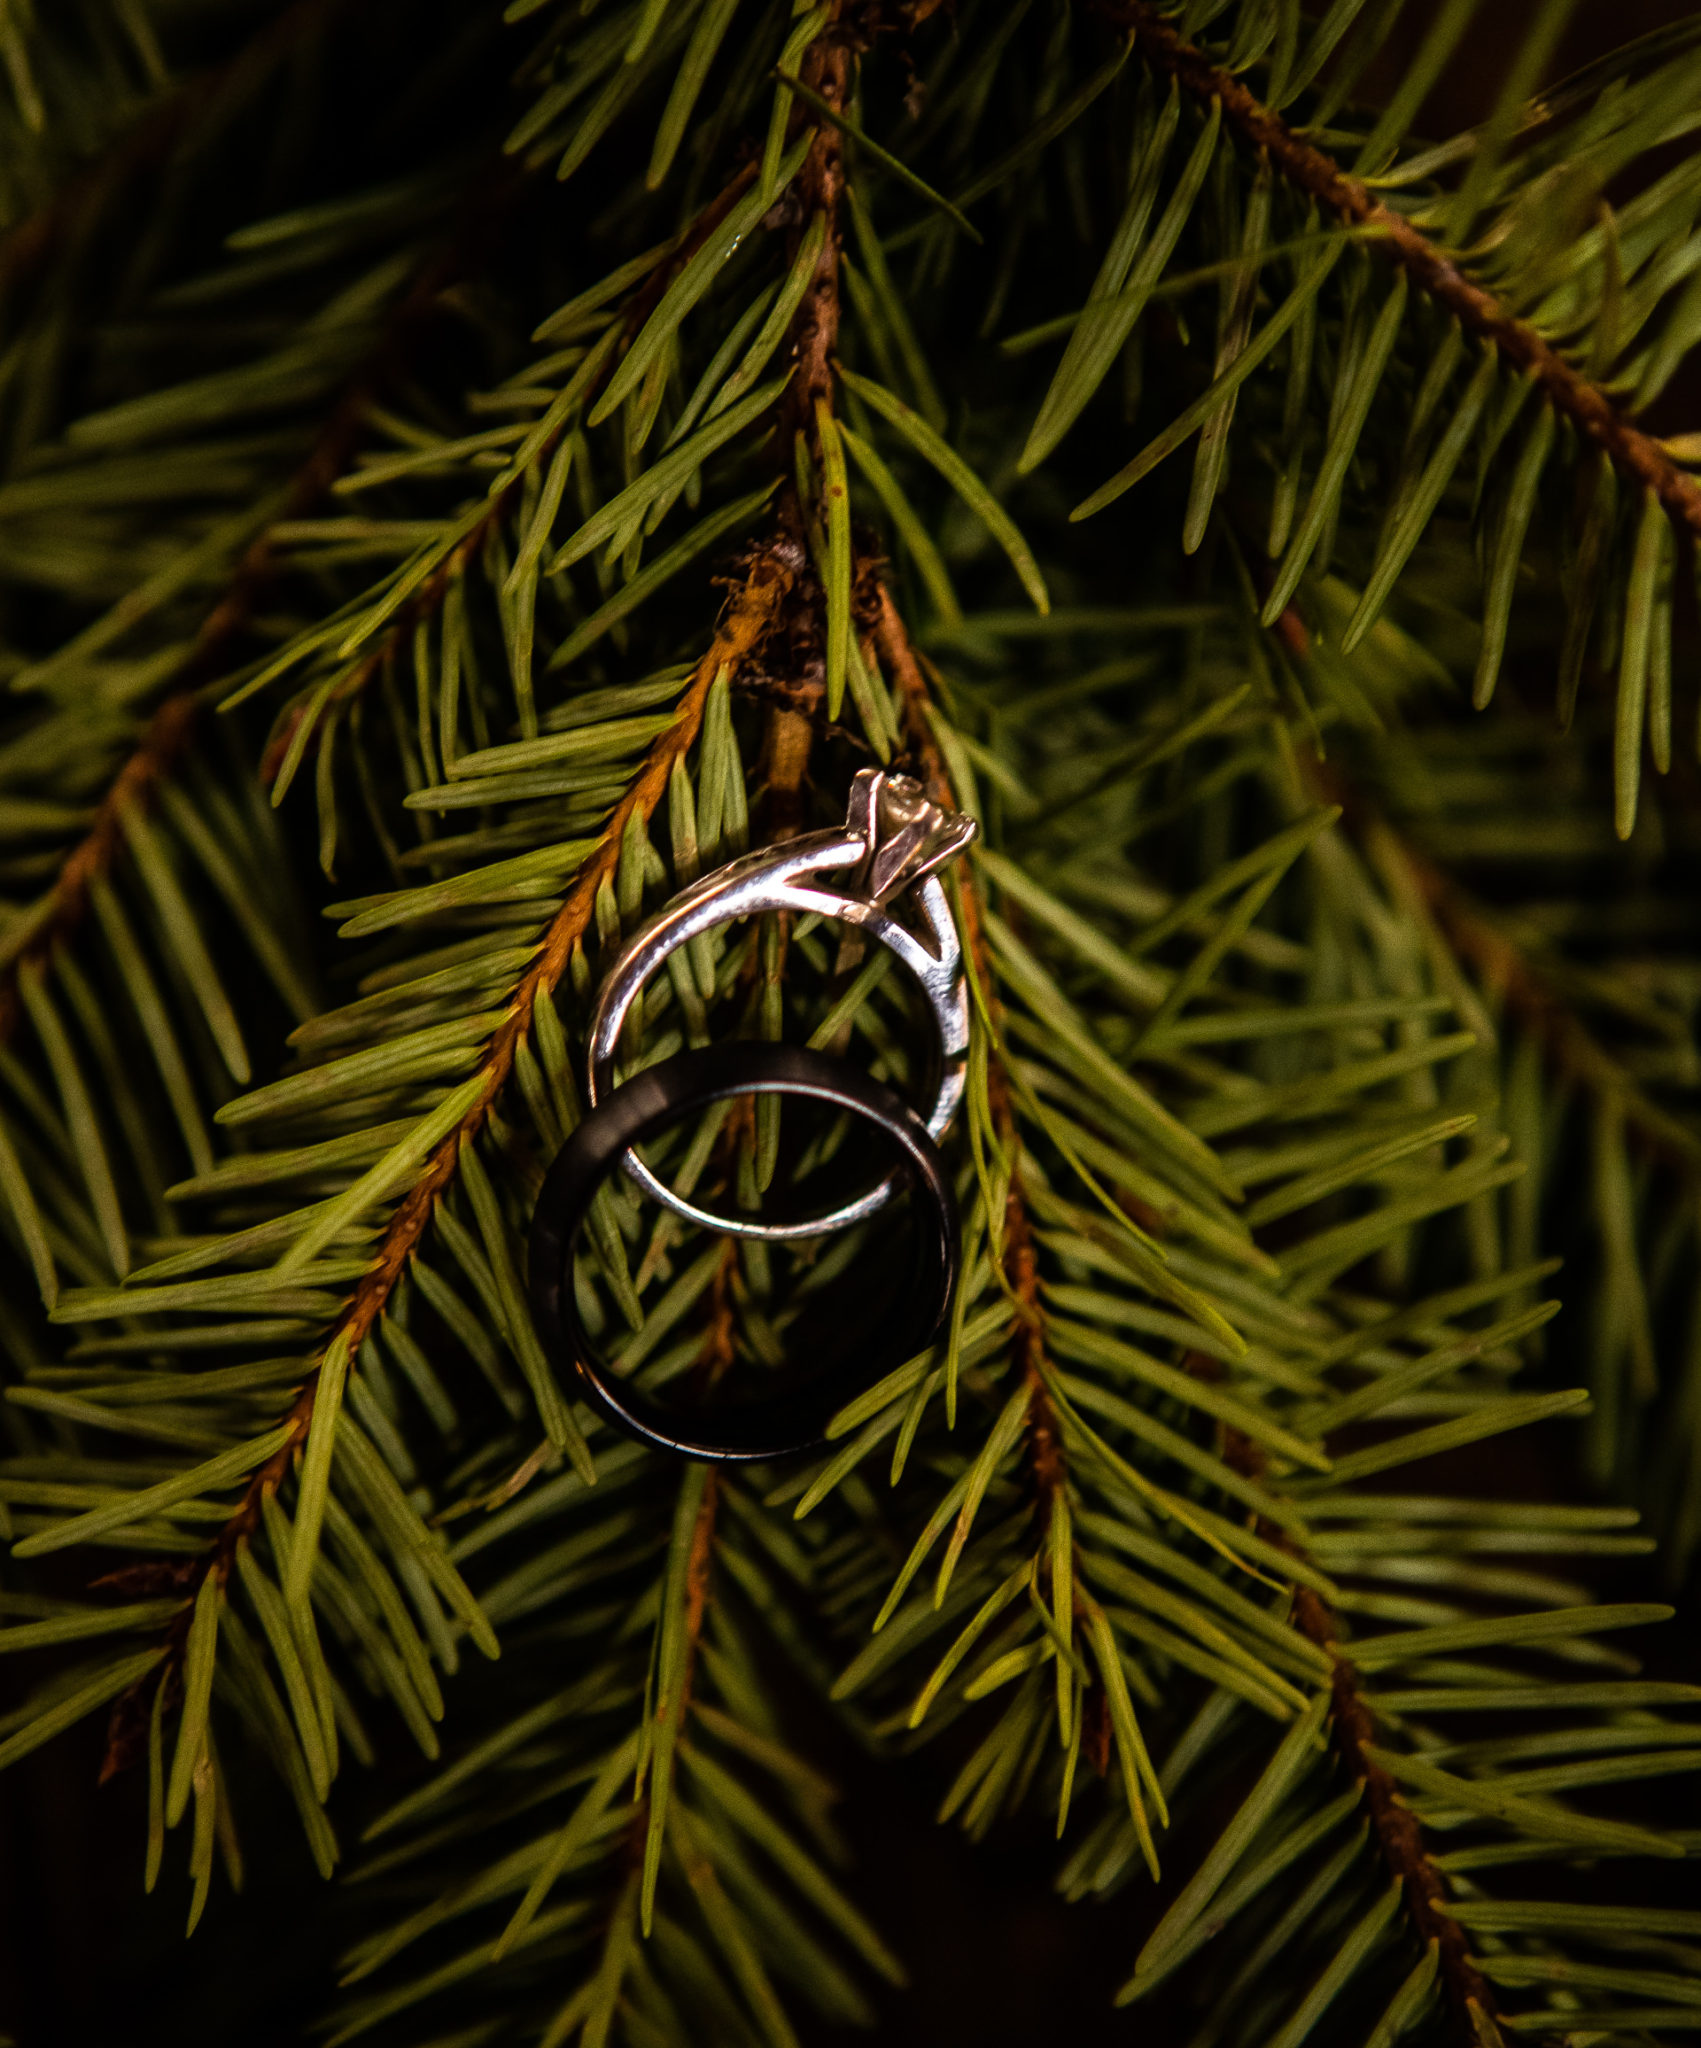 Knot and Pine Ring Shots